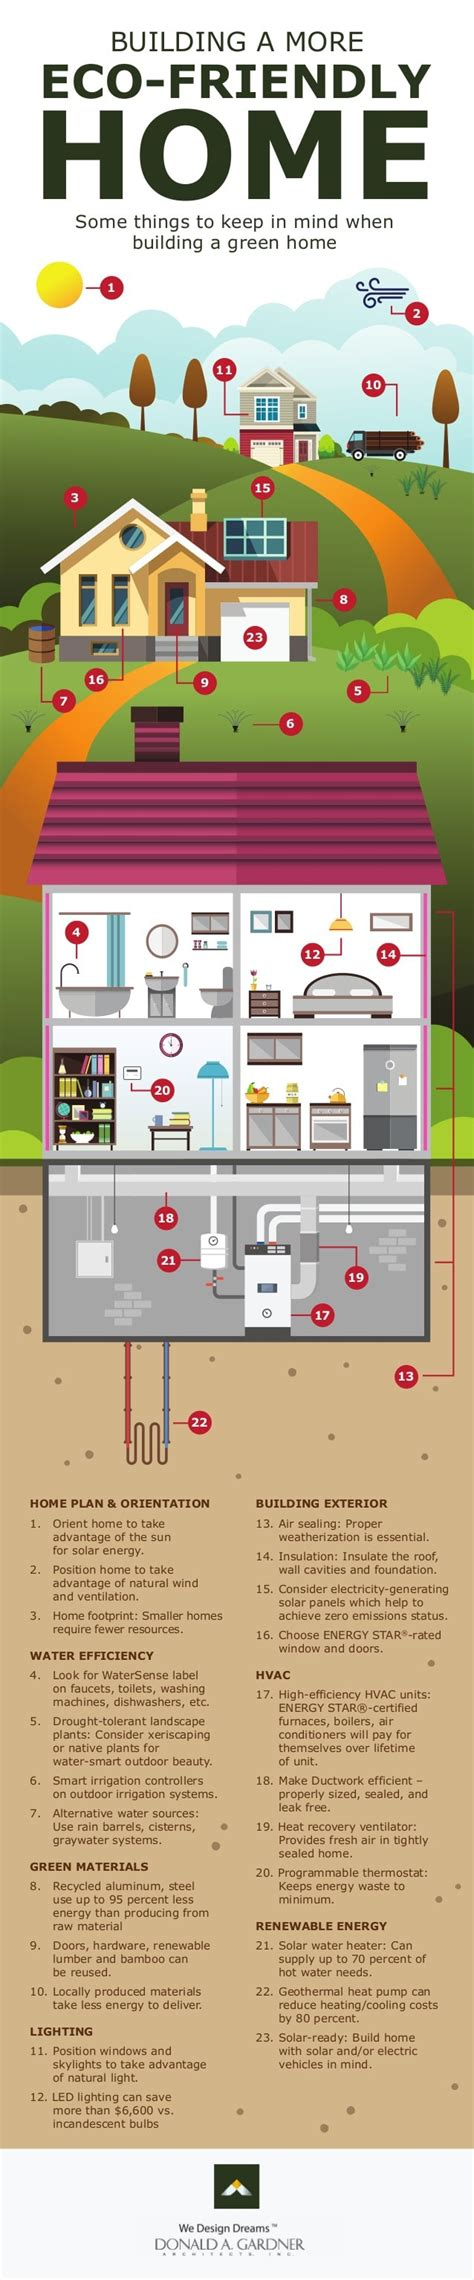 home construction costs considerations infographic building a more eco friendly home infographic greener